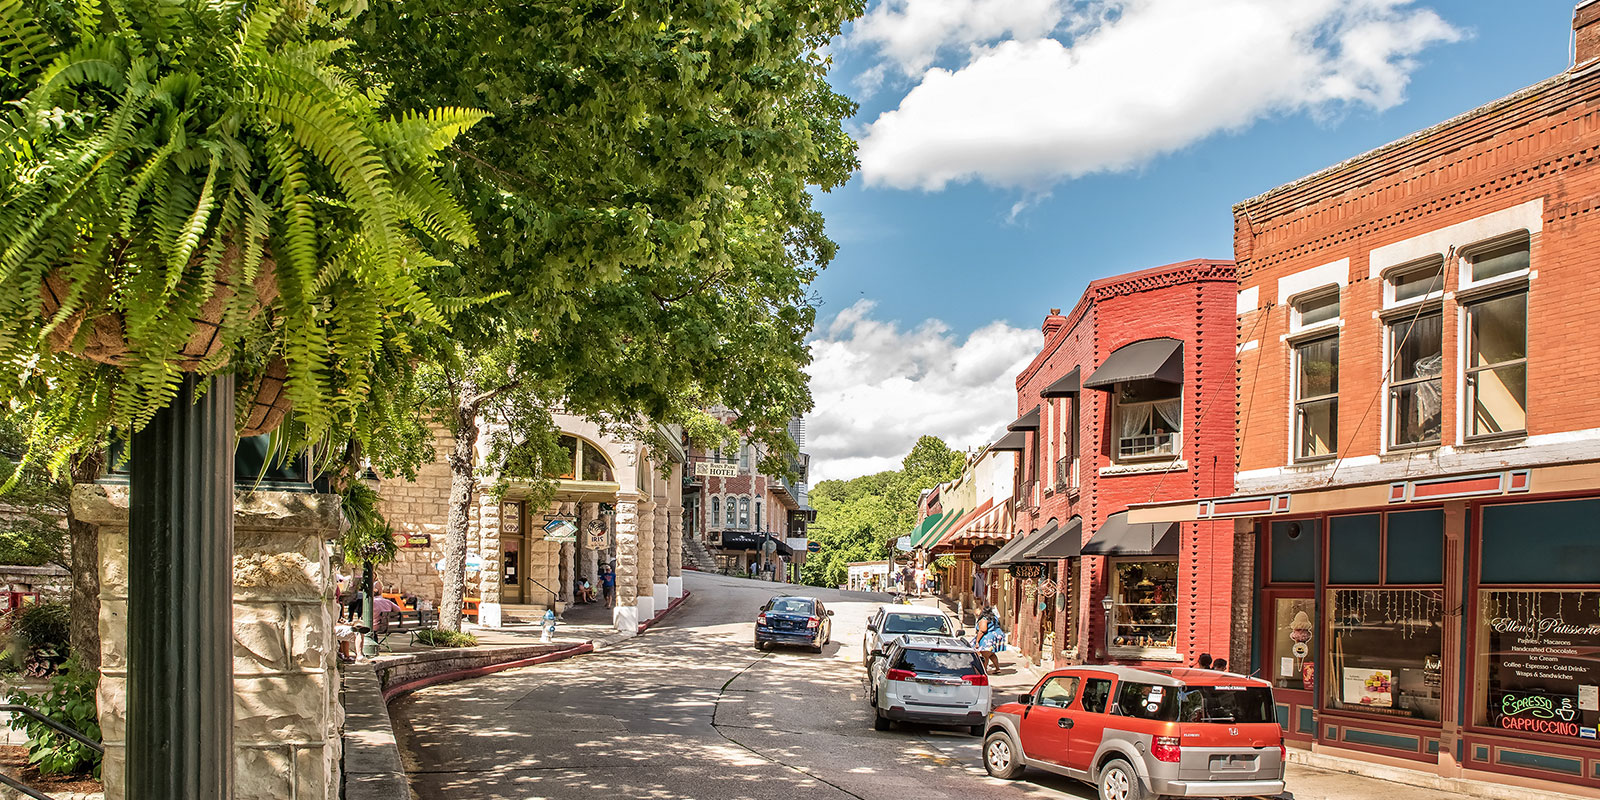 What Should You Do in Eureka Springs This Summer?